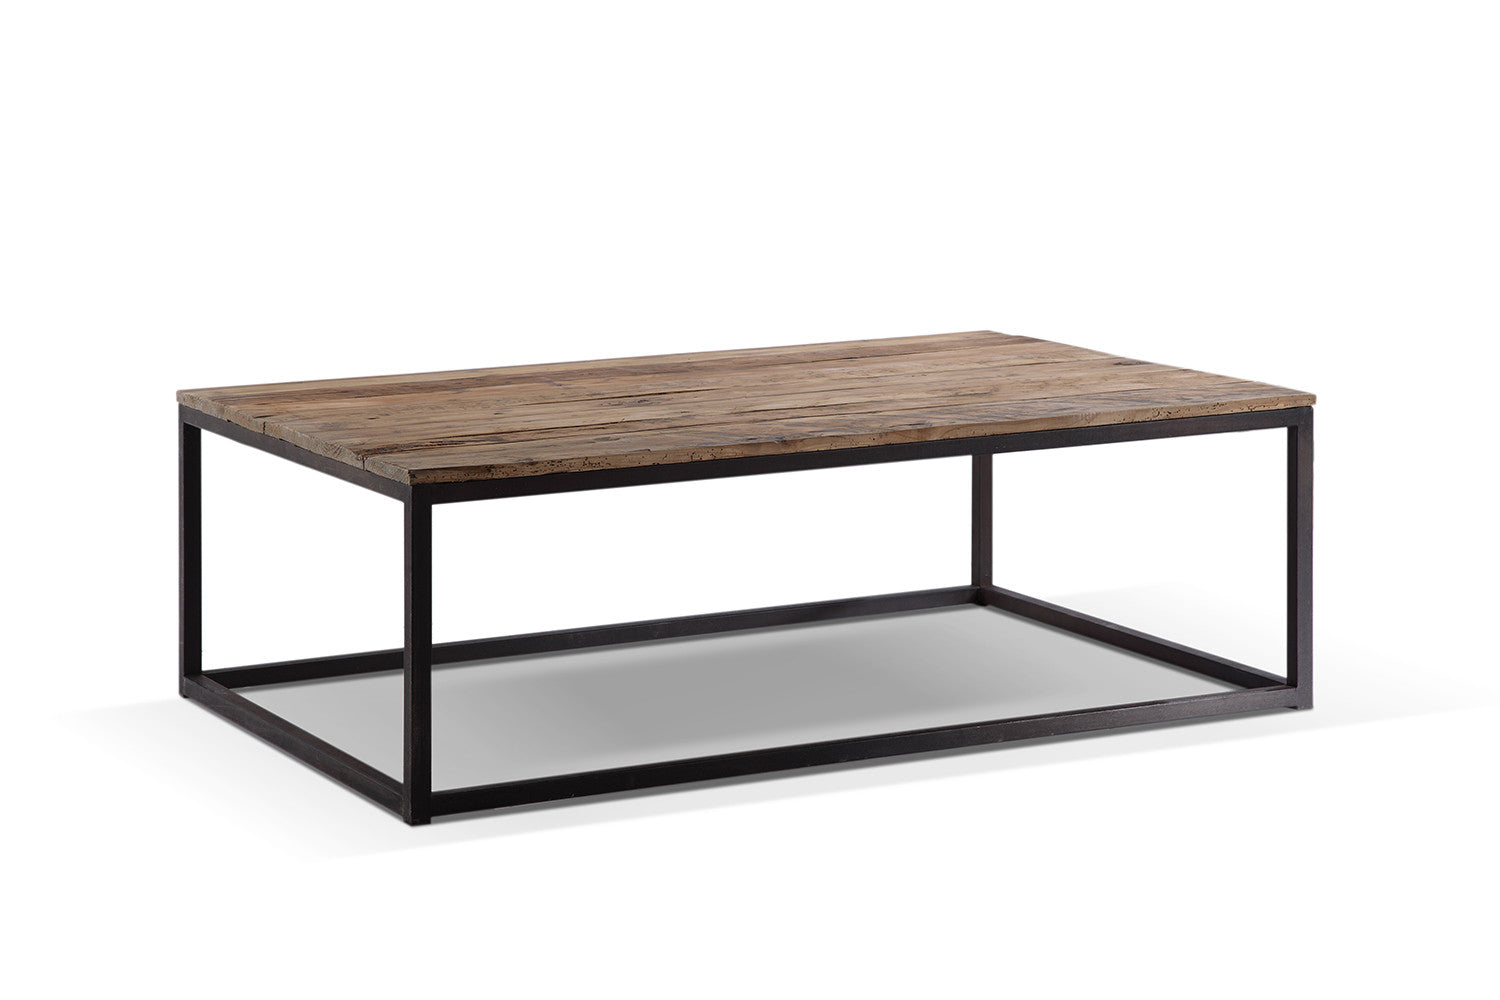 Table basse industrielle en m tal et bois tb02 rose for Table industrielle